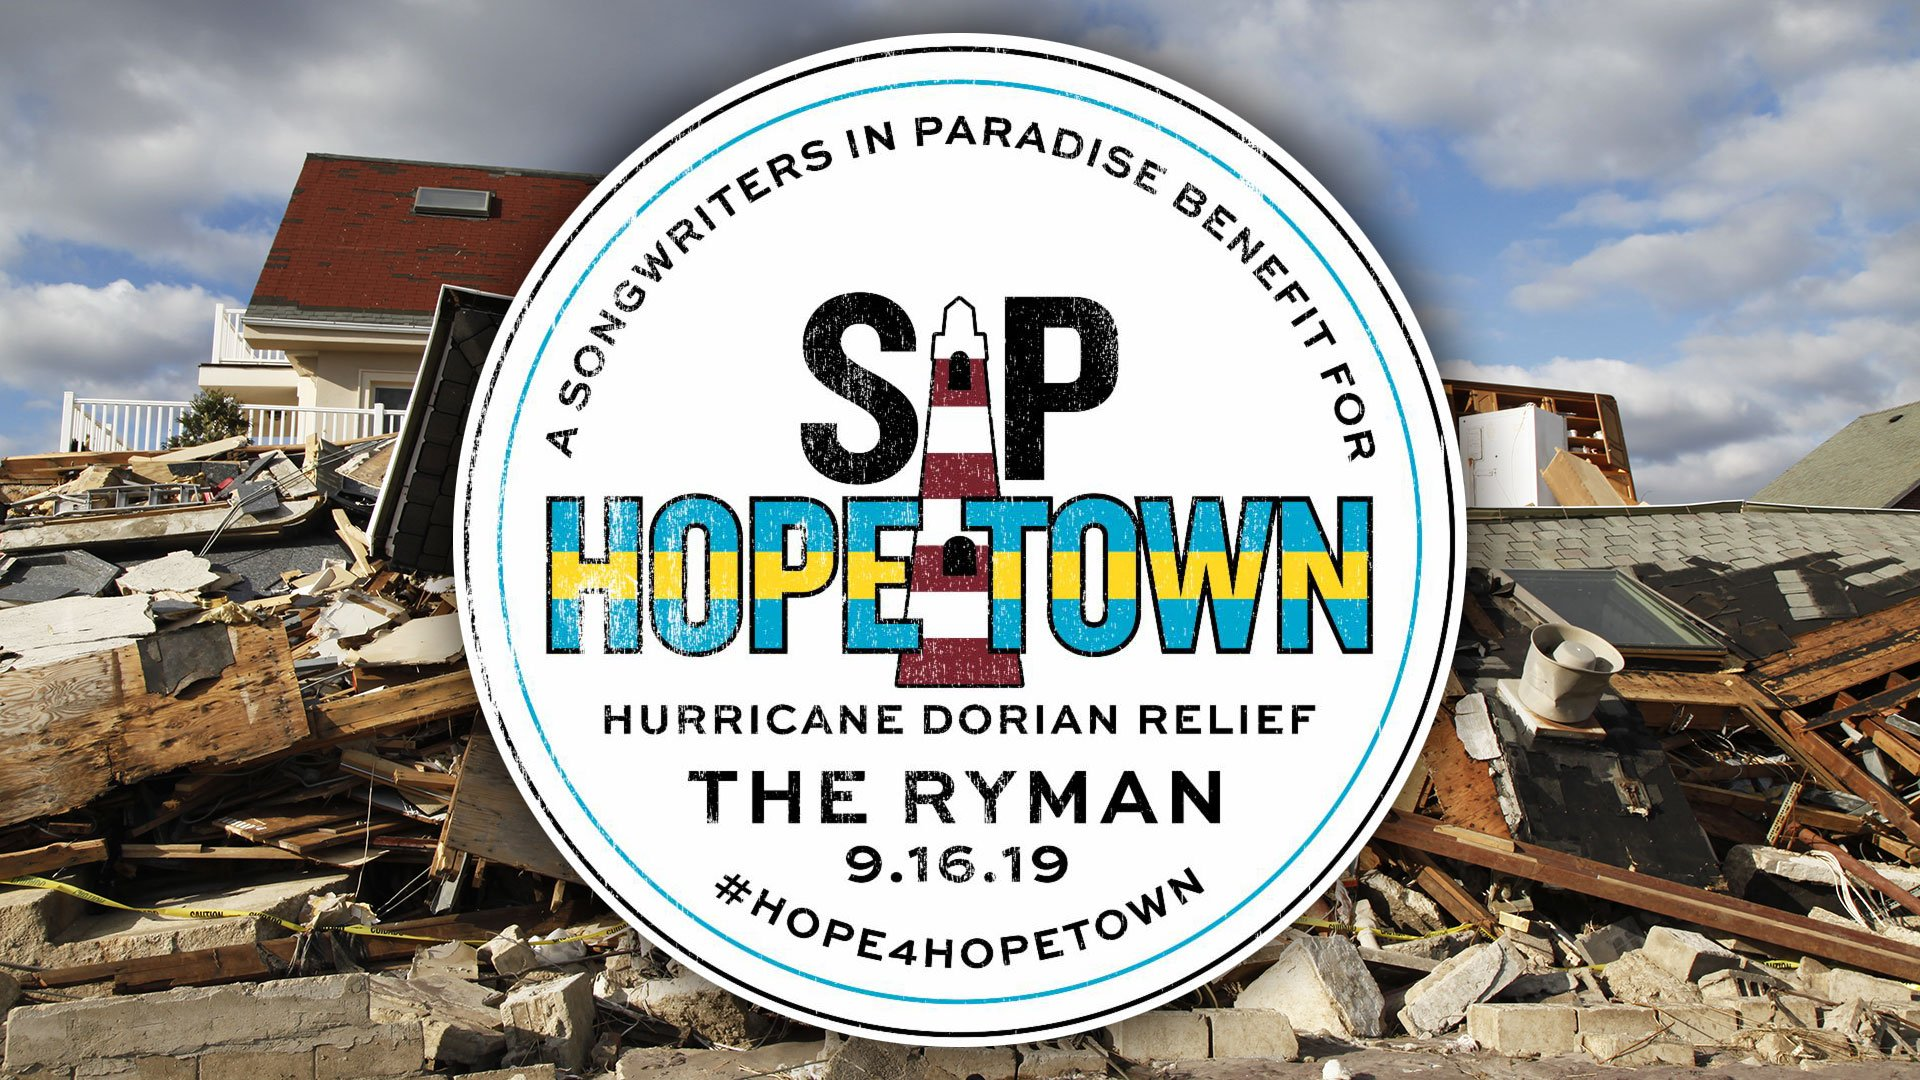 Country Music Stars to Play Hurricane Dorian Relief Concert